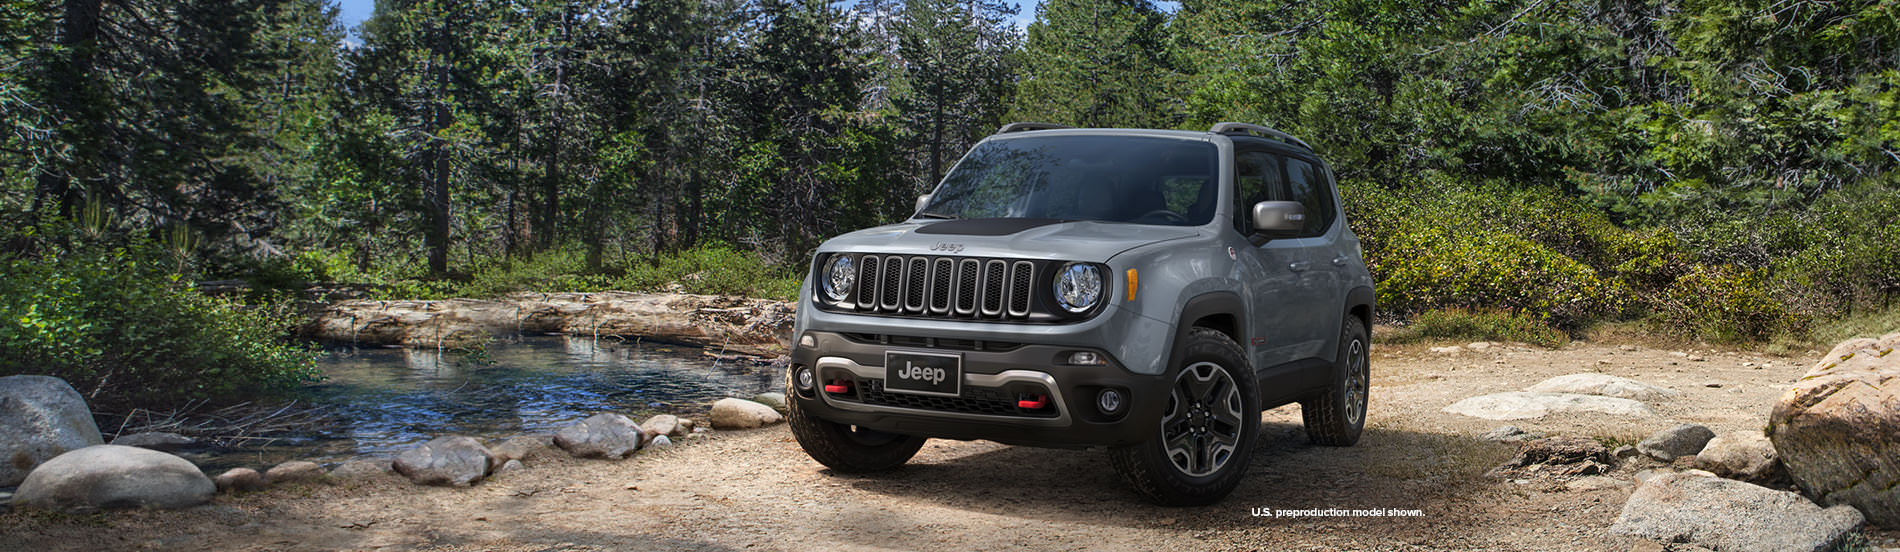 Jeep Renegade #17